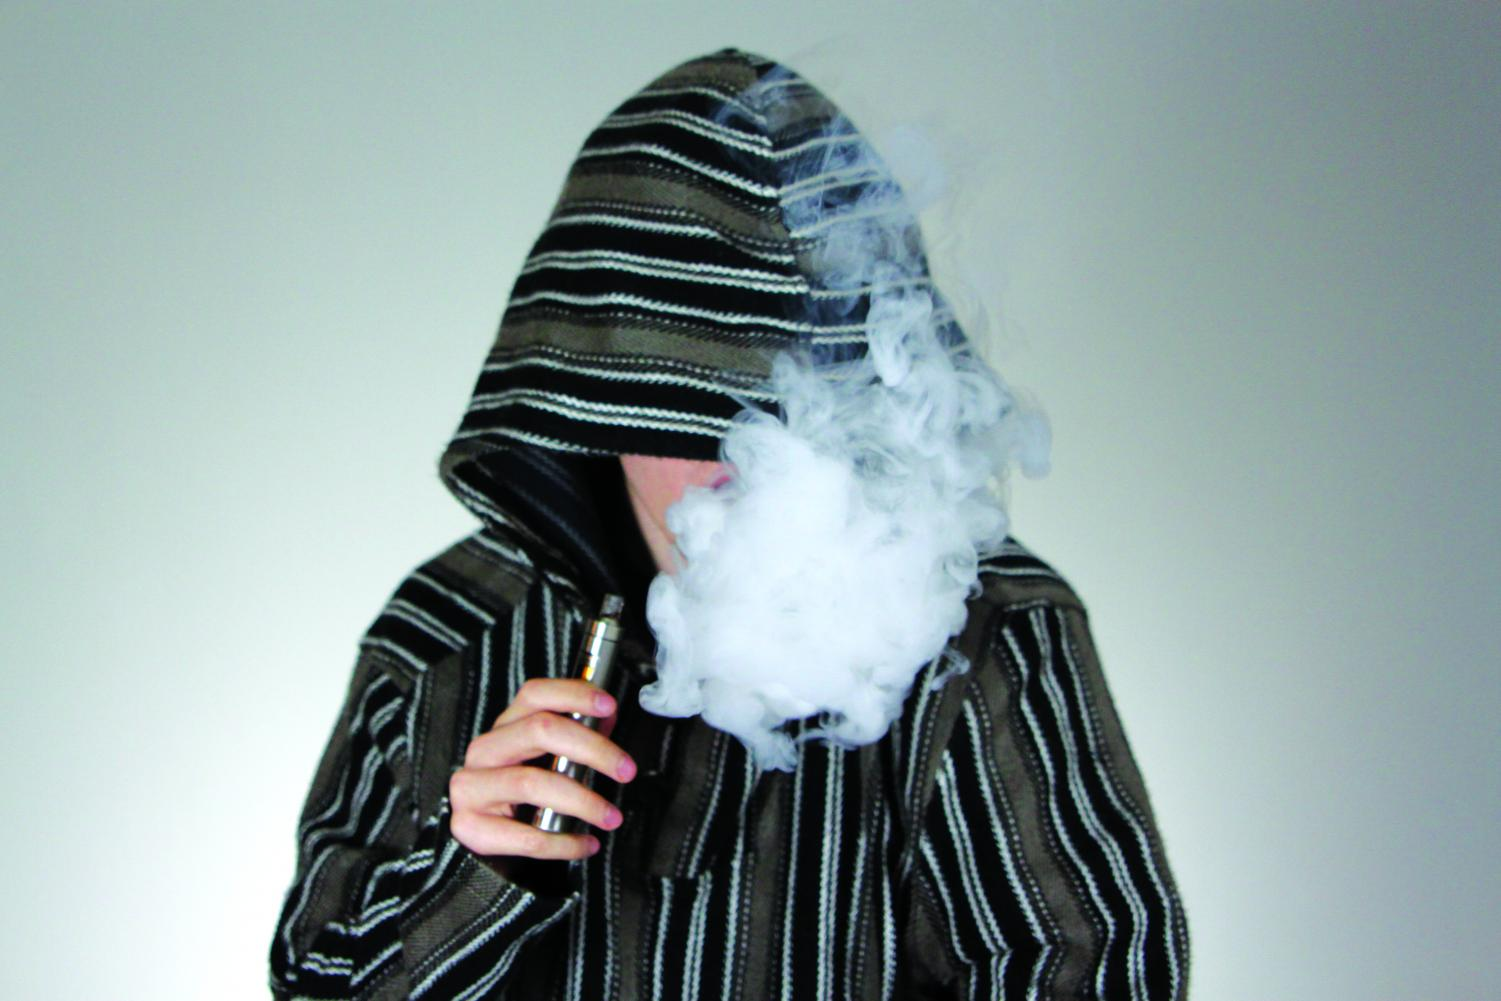 Different types of vapes produce different amounts of vapor.